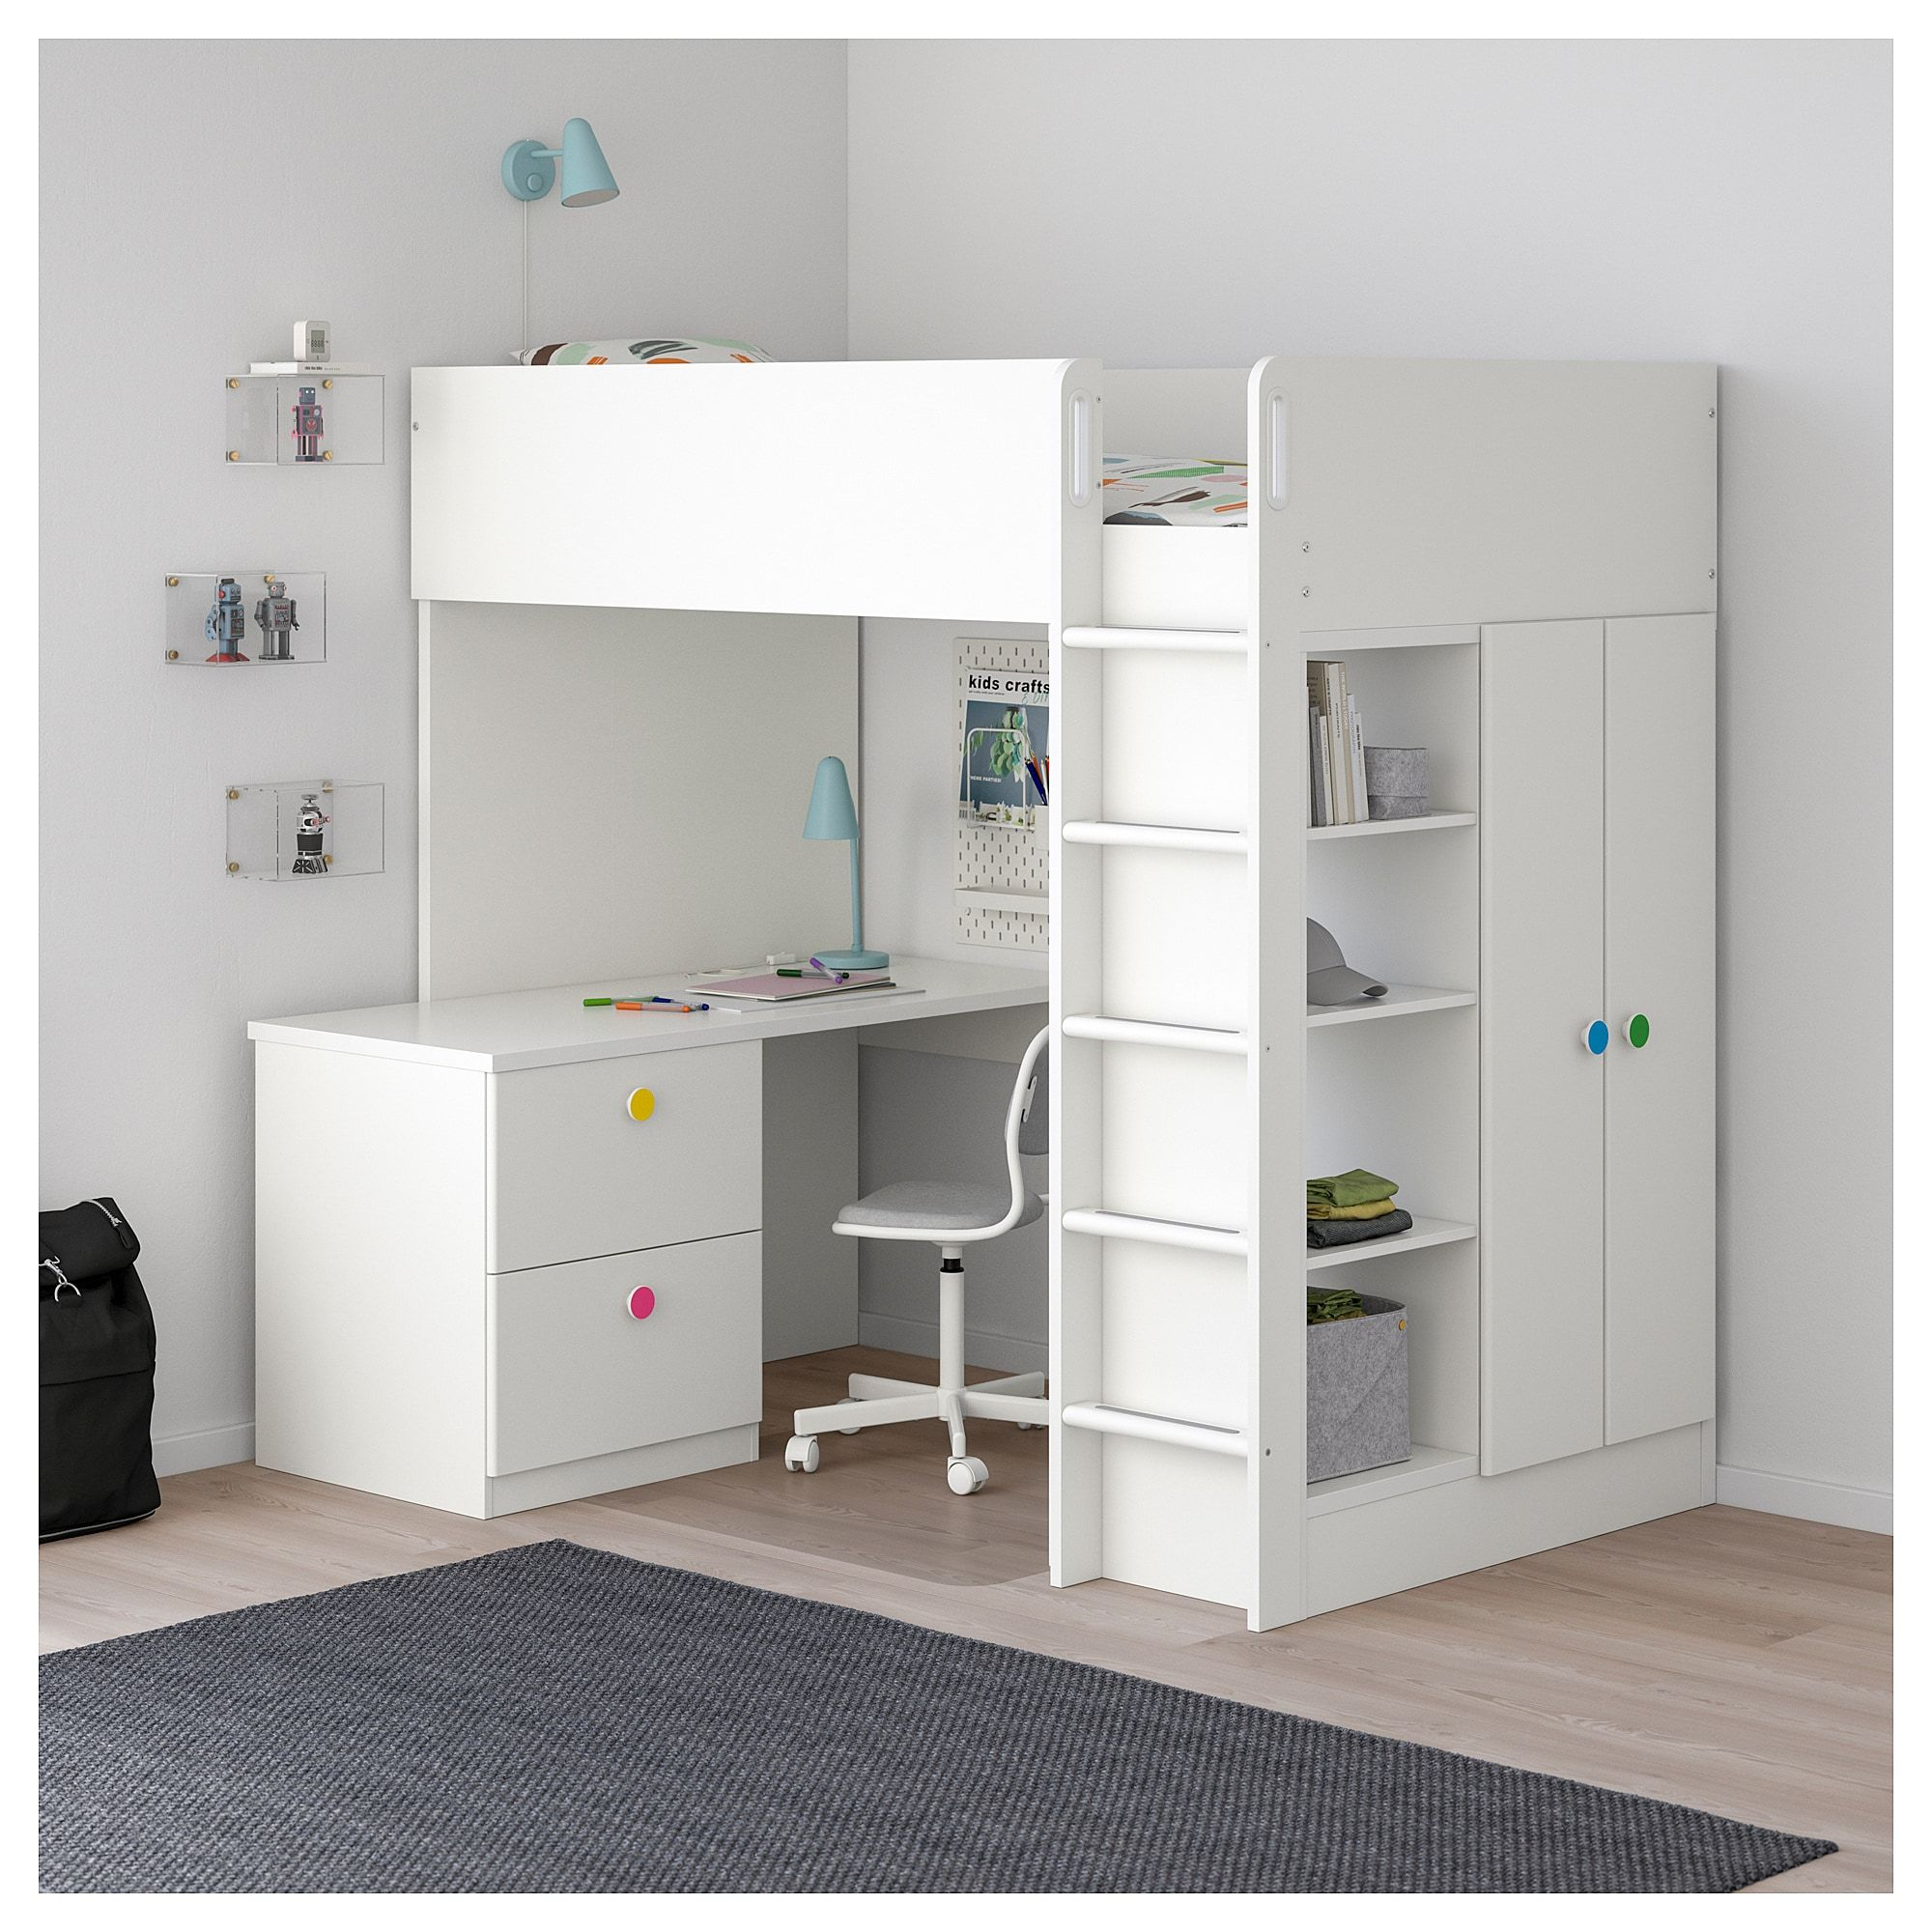 Loft bed with desk white  IKEA  STUVA  FÖLJA Loft bed with  drawers doors white in